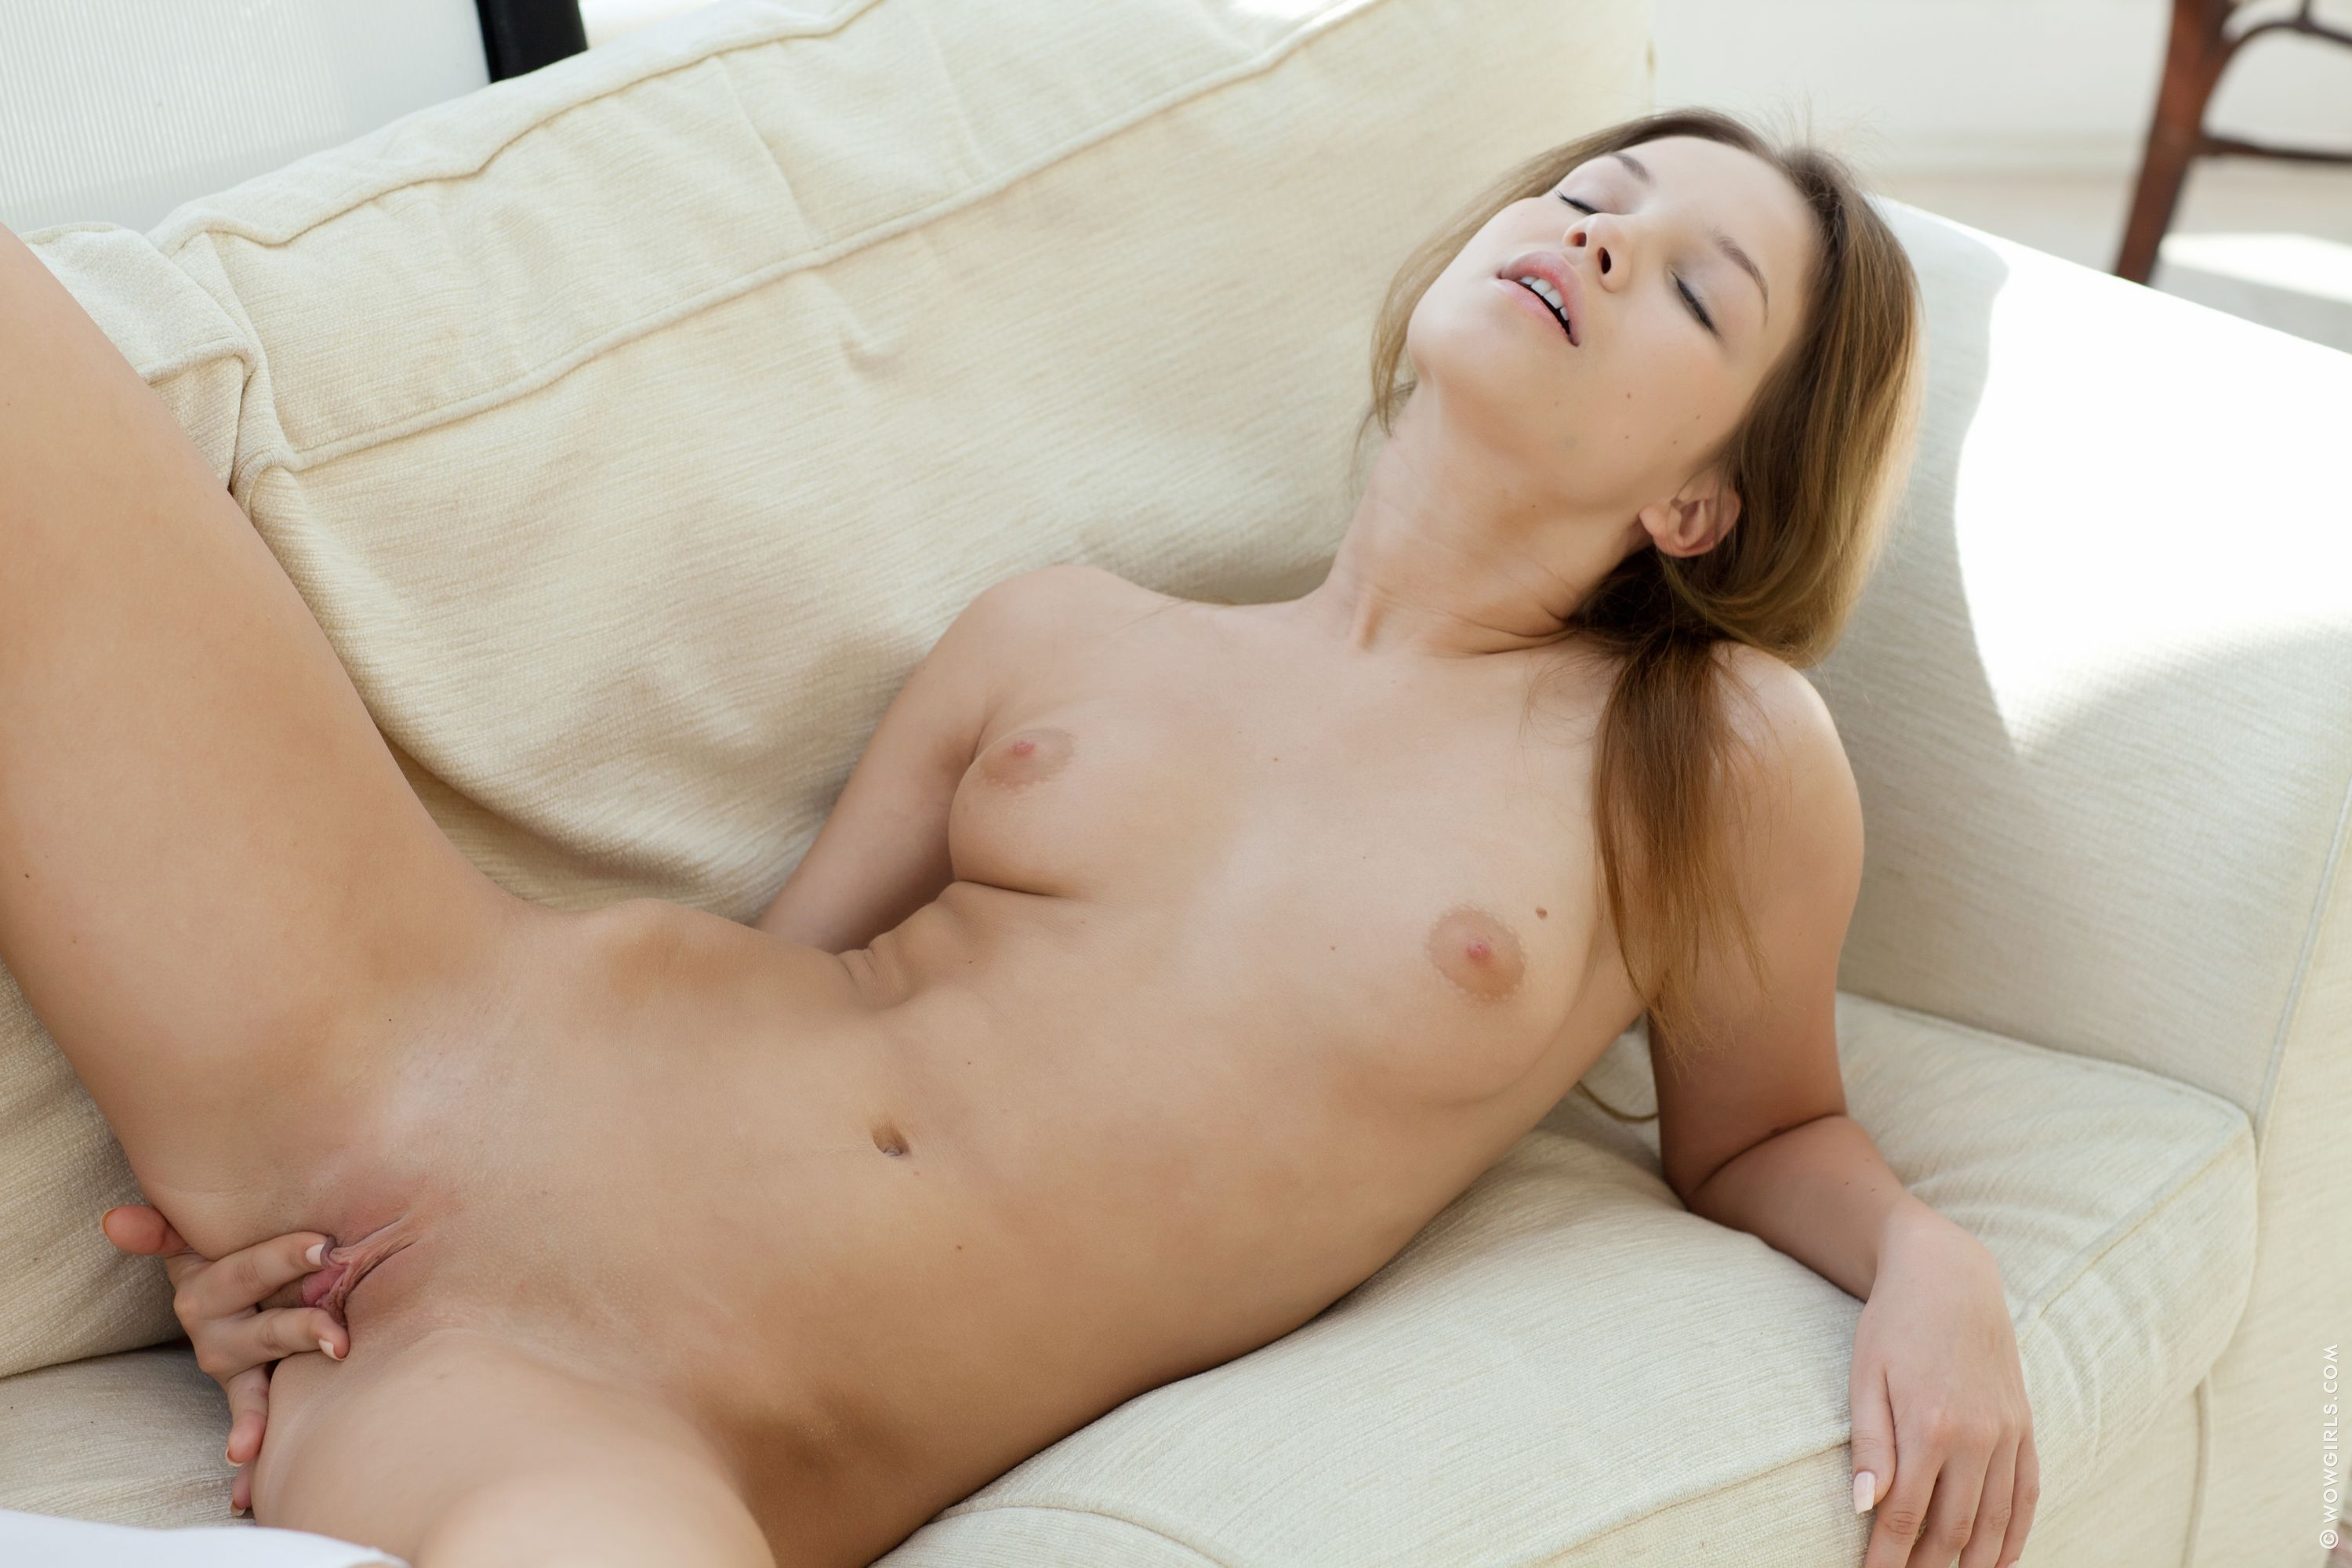 girls nude pics download free